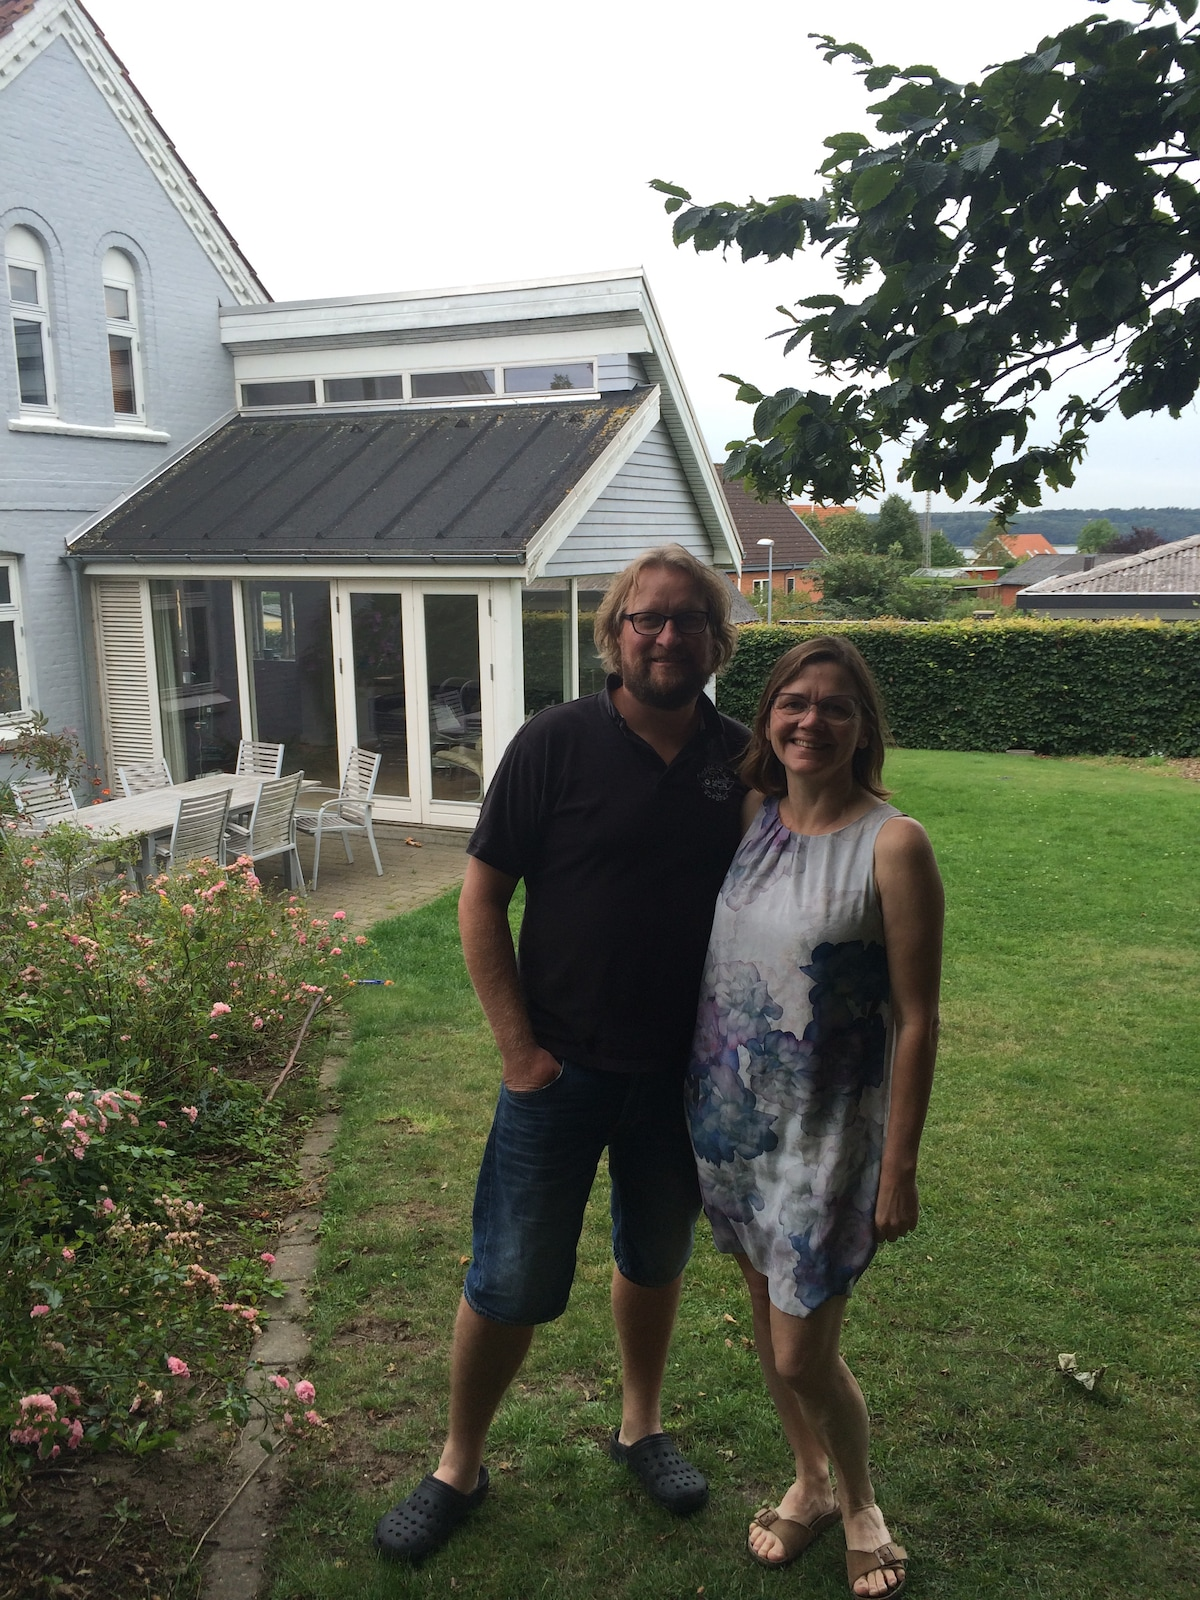 Nanna & Peter from Fredericia